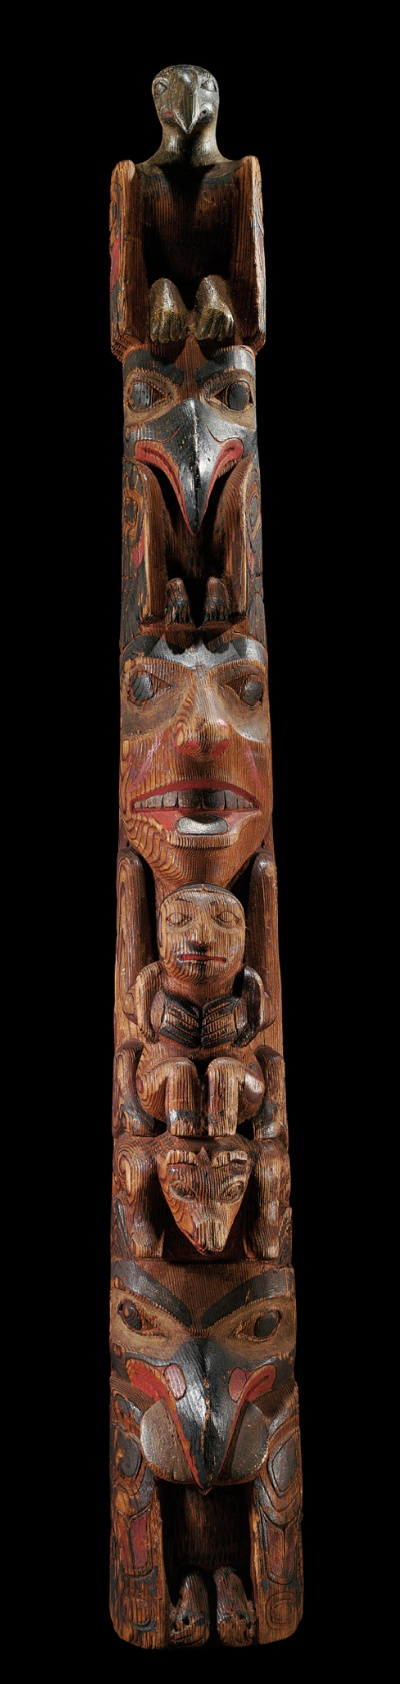 A Haïda model totem pole, carved by George Young, Northwest Coast